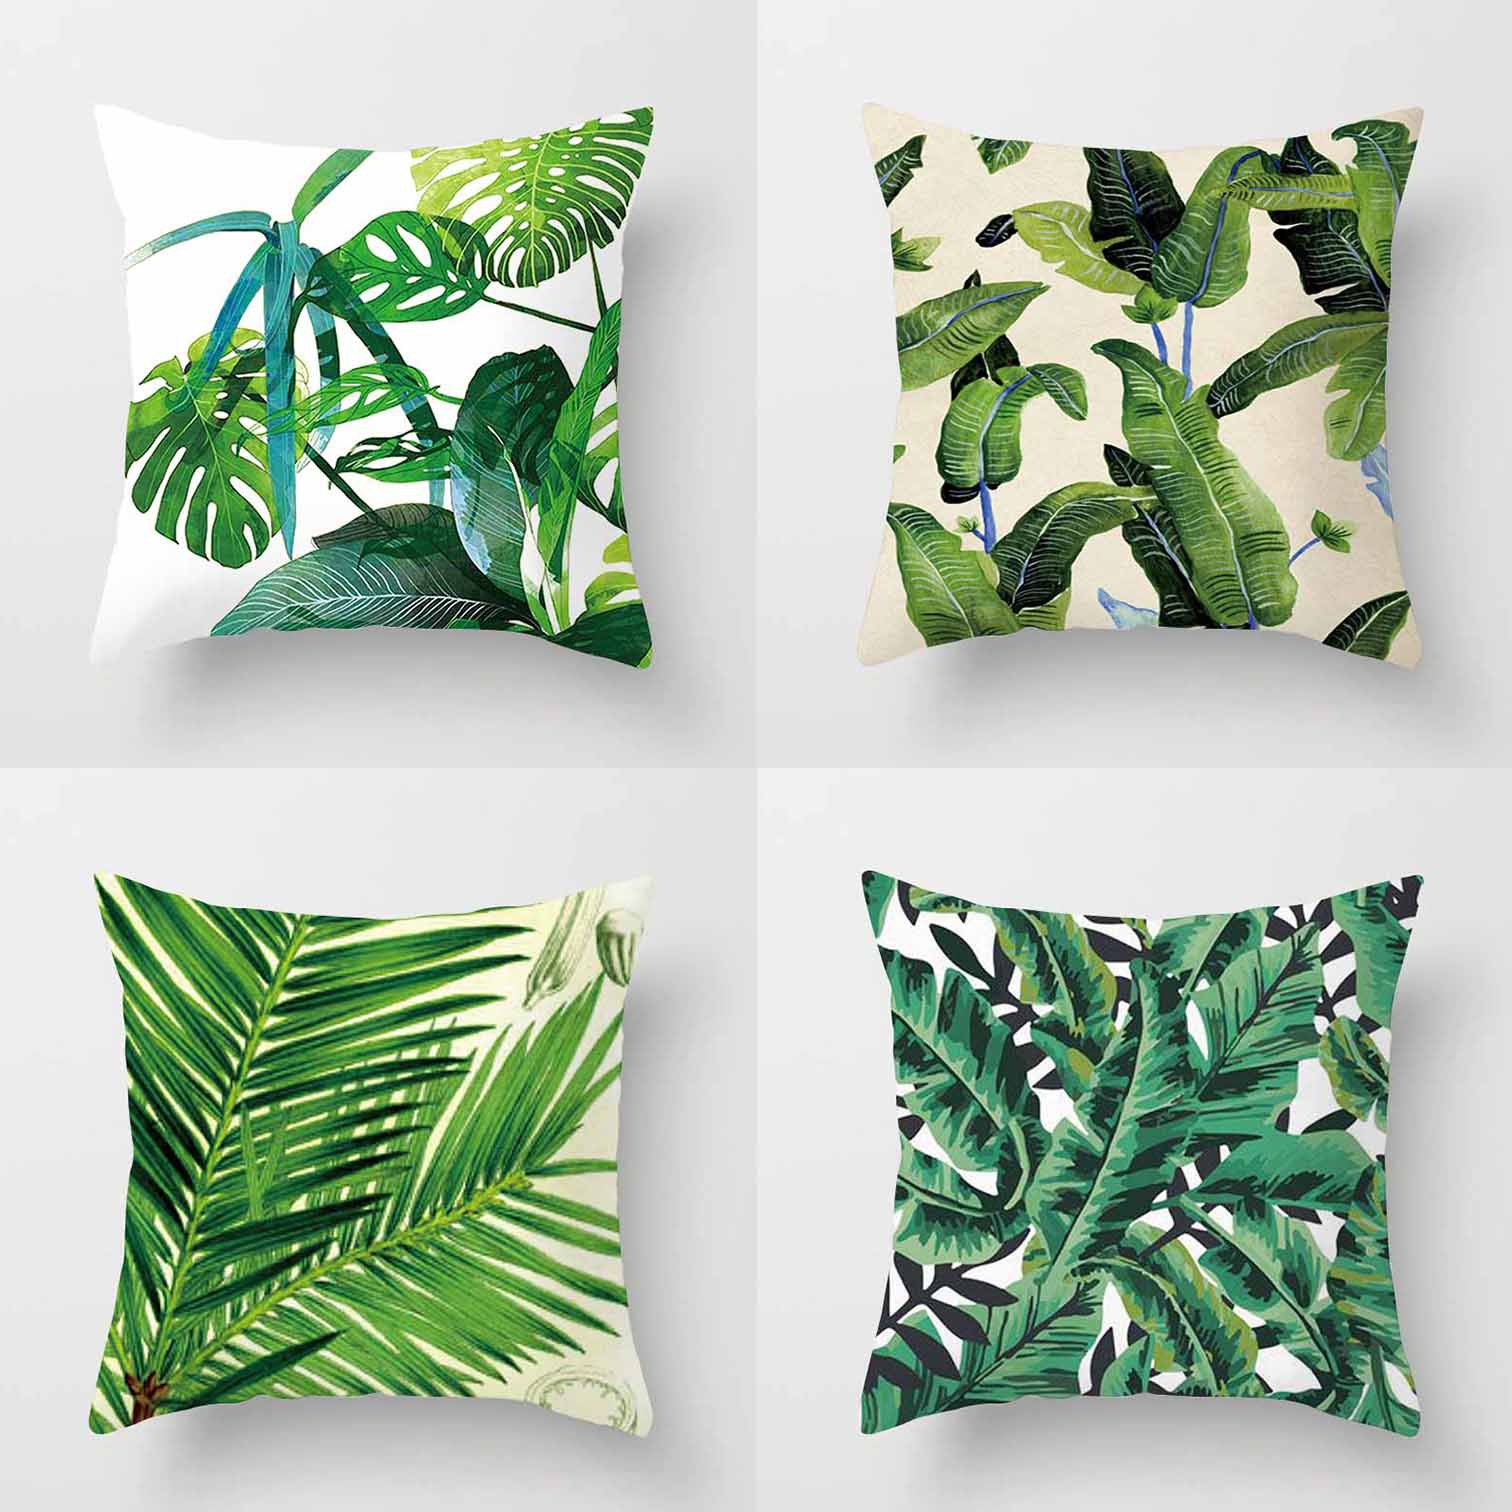 Cute Plant Print Cushion Cover Polyester Decorative For Sofa Seat Soft Throw Pillow Case Cover 45x45cm Home Decor